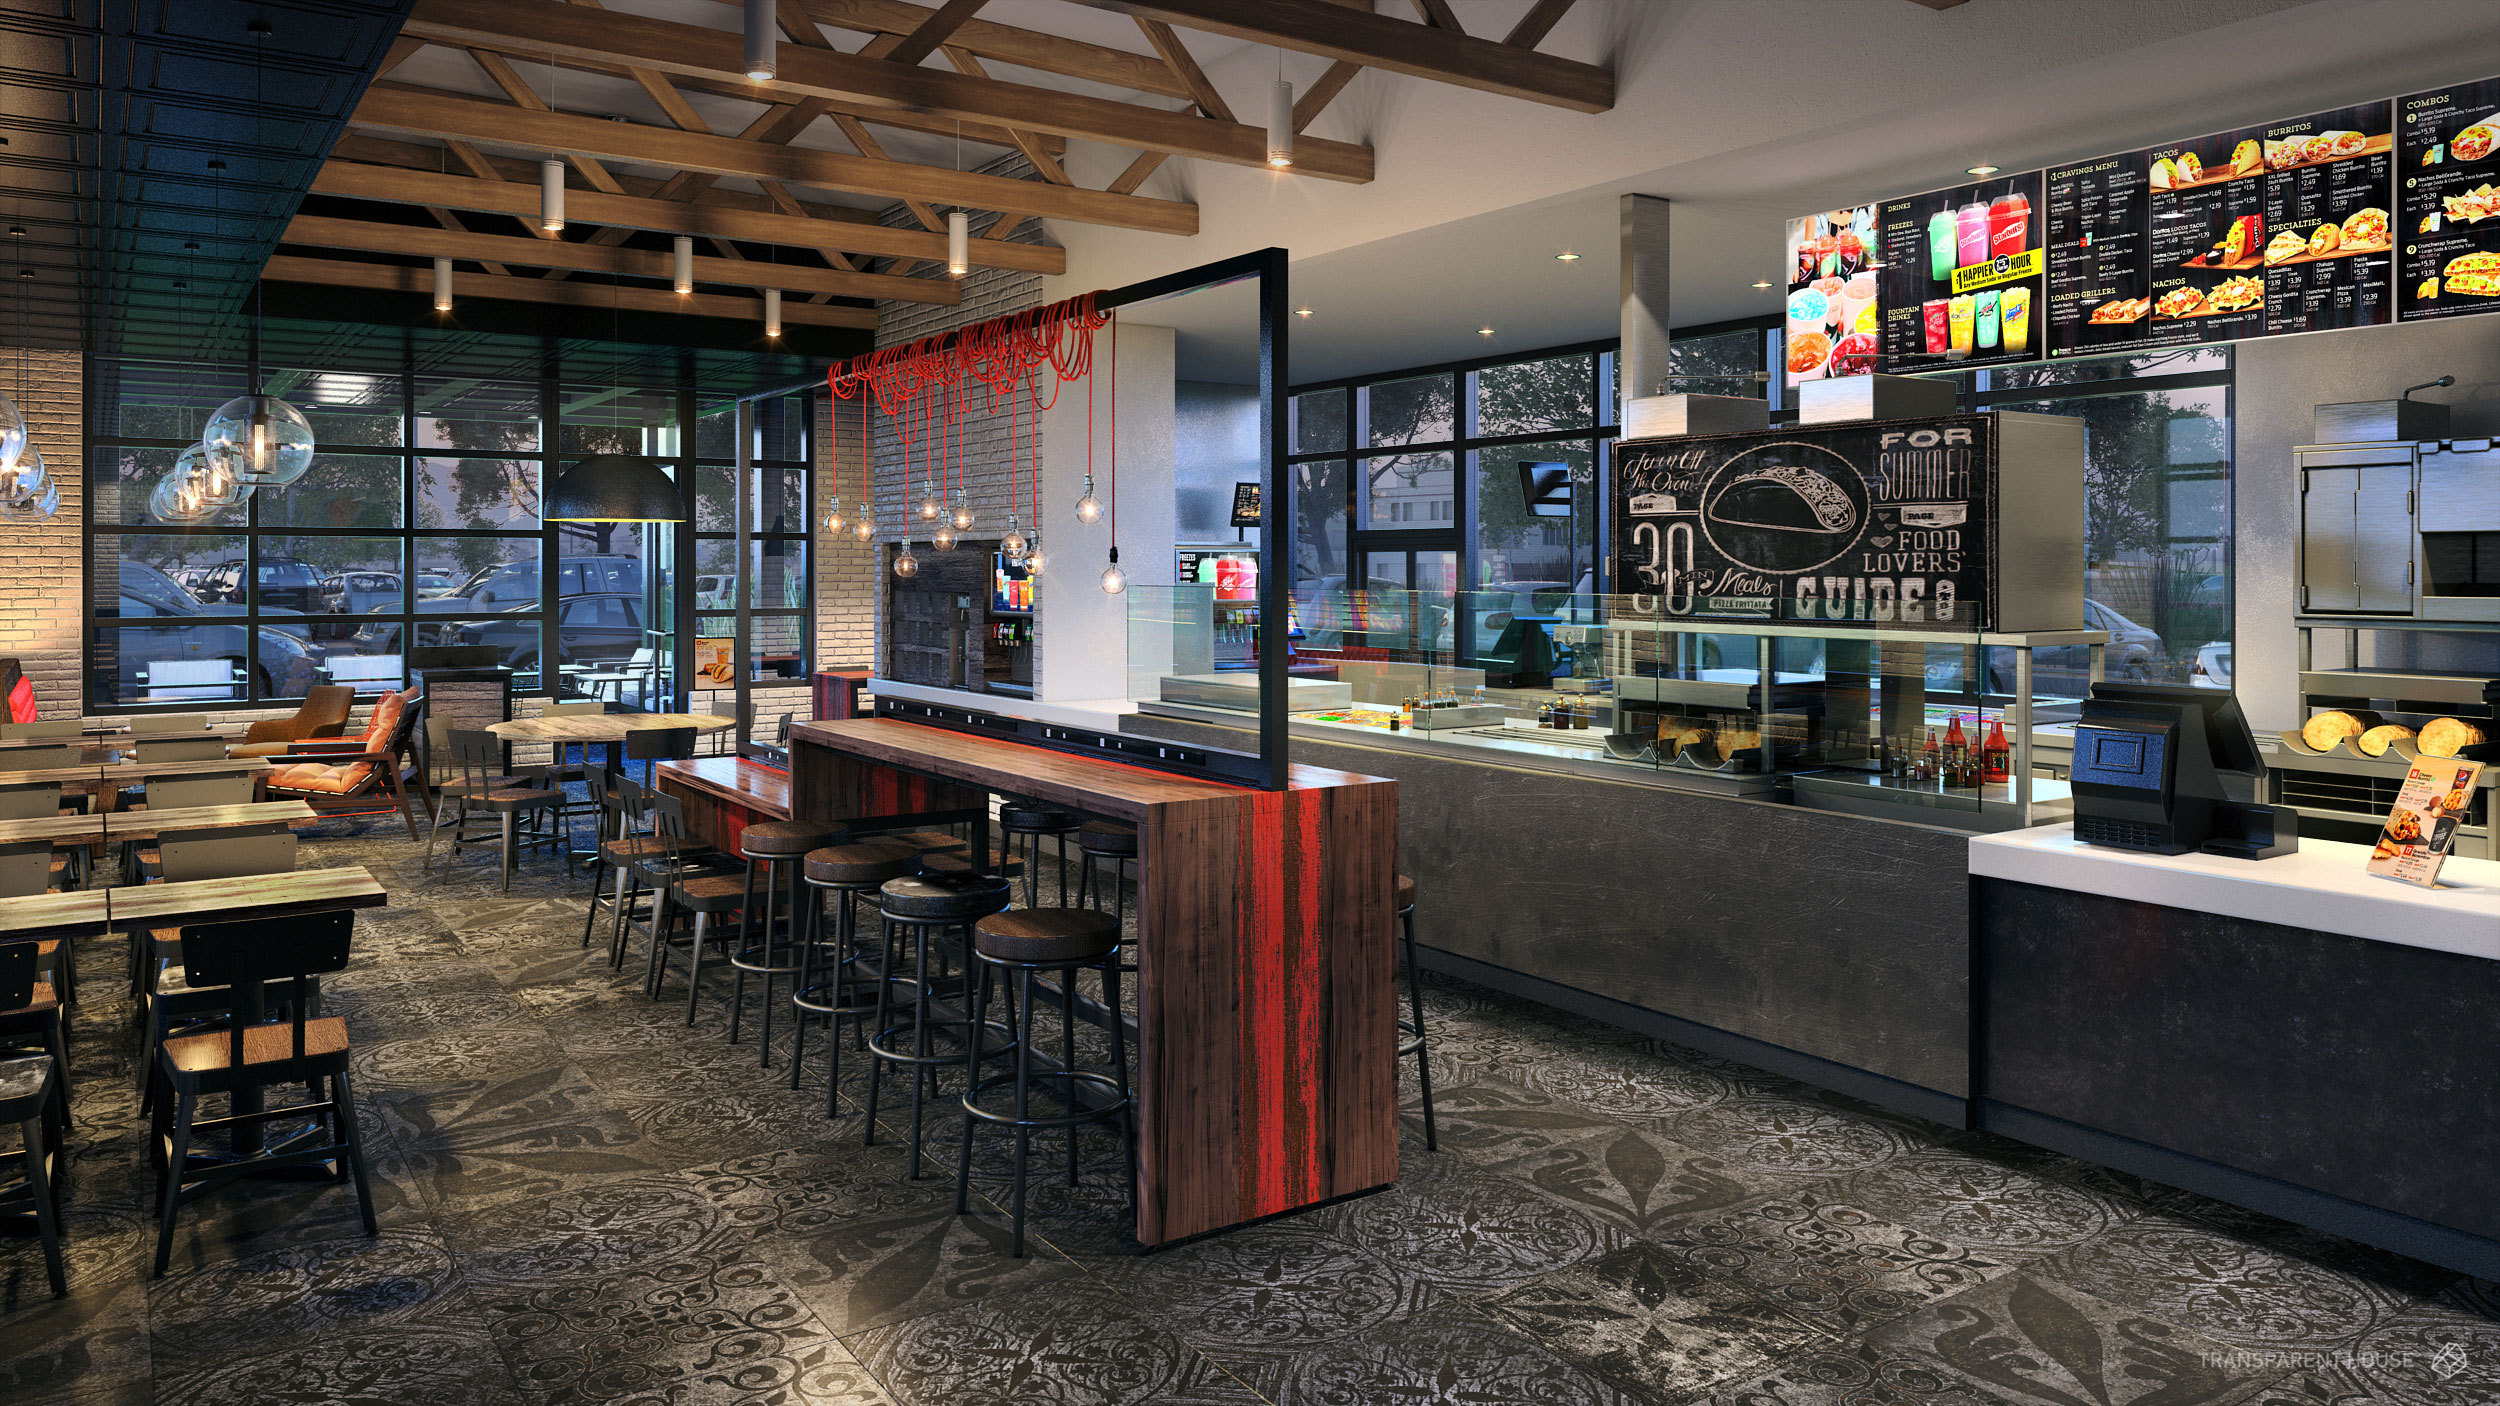 Taco bell debuts four new restaurant designs and they are